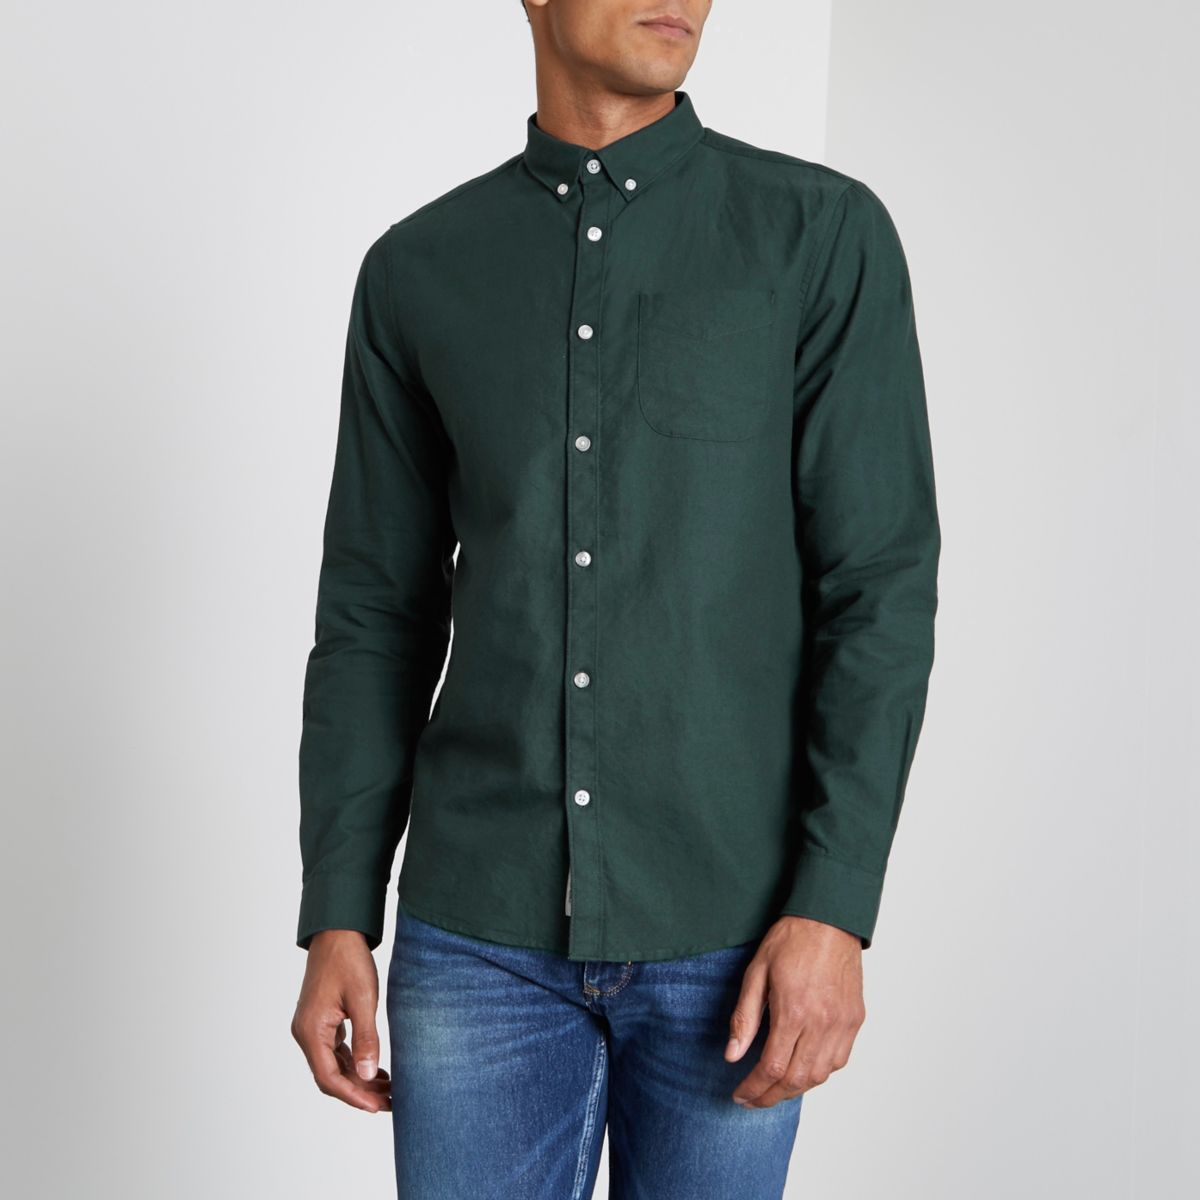 Bottle green long sleeve Oxford shirt - Shirts - Sale